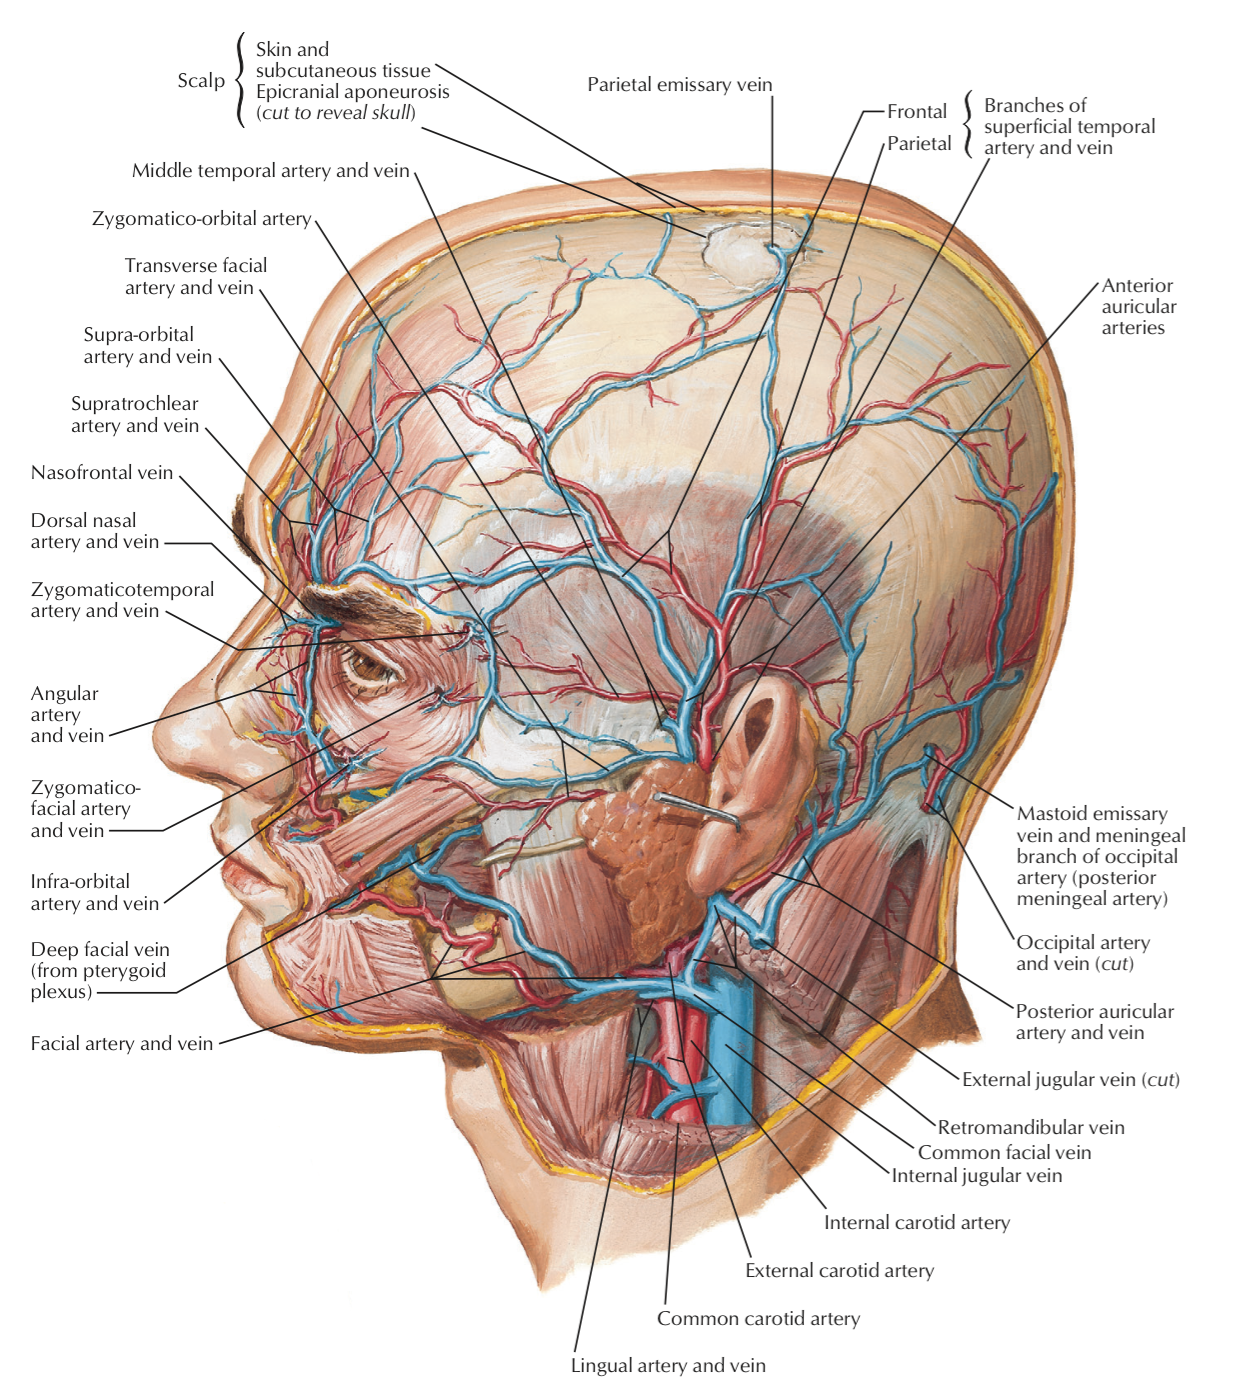 netter atlas of human anatomy online | Head and neck | Pinterest ...